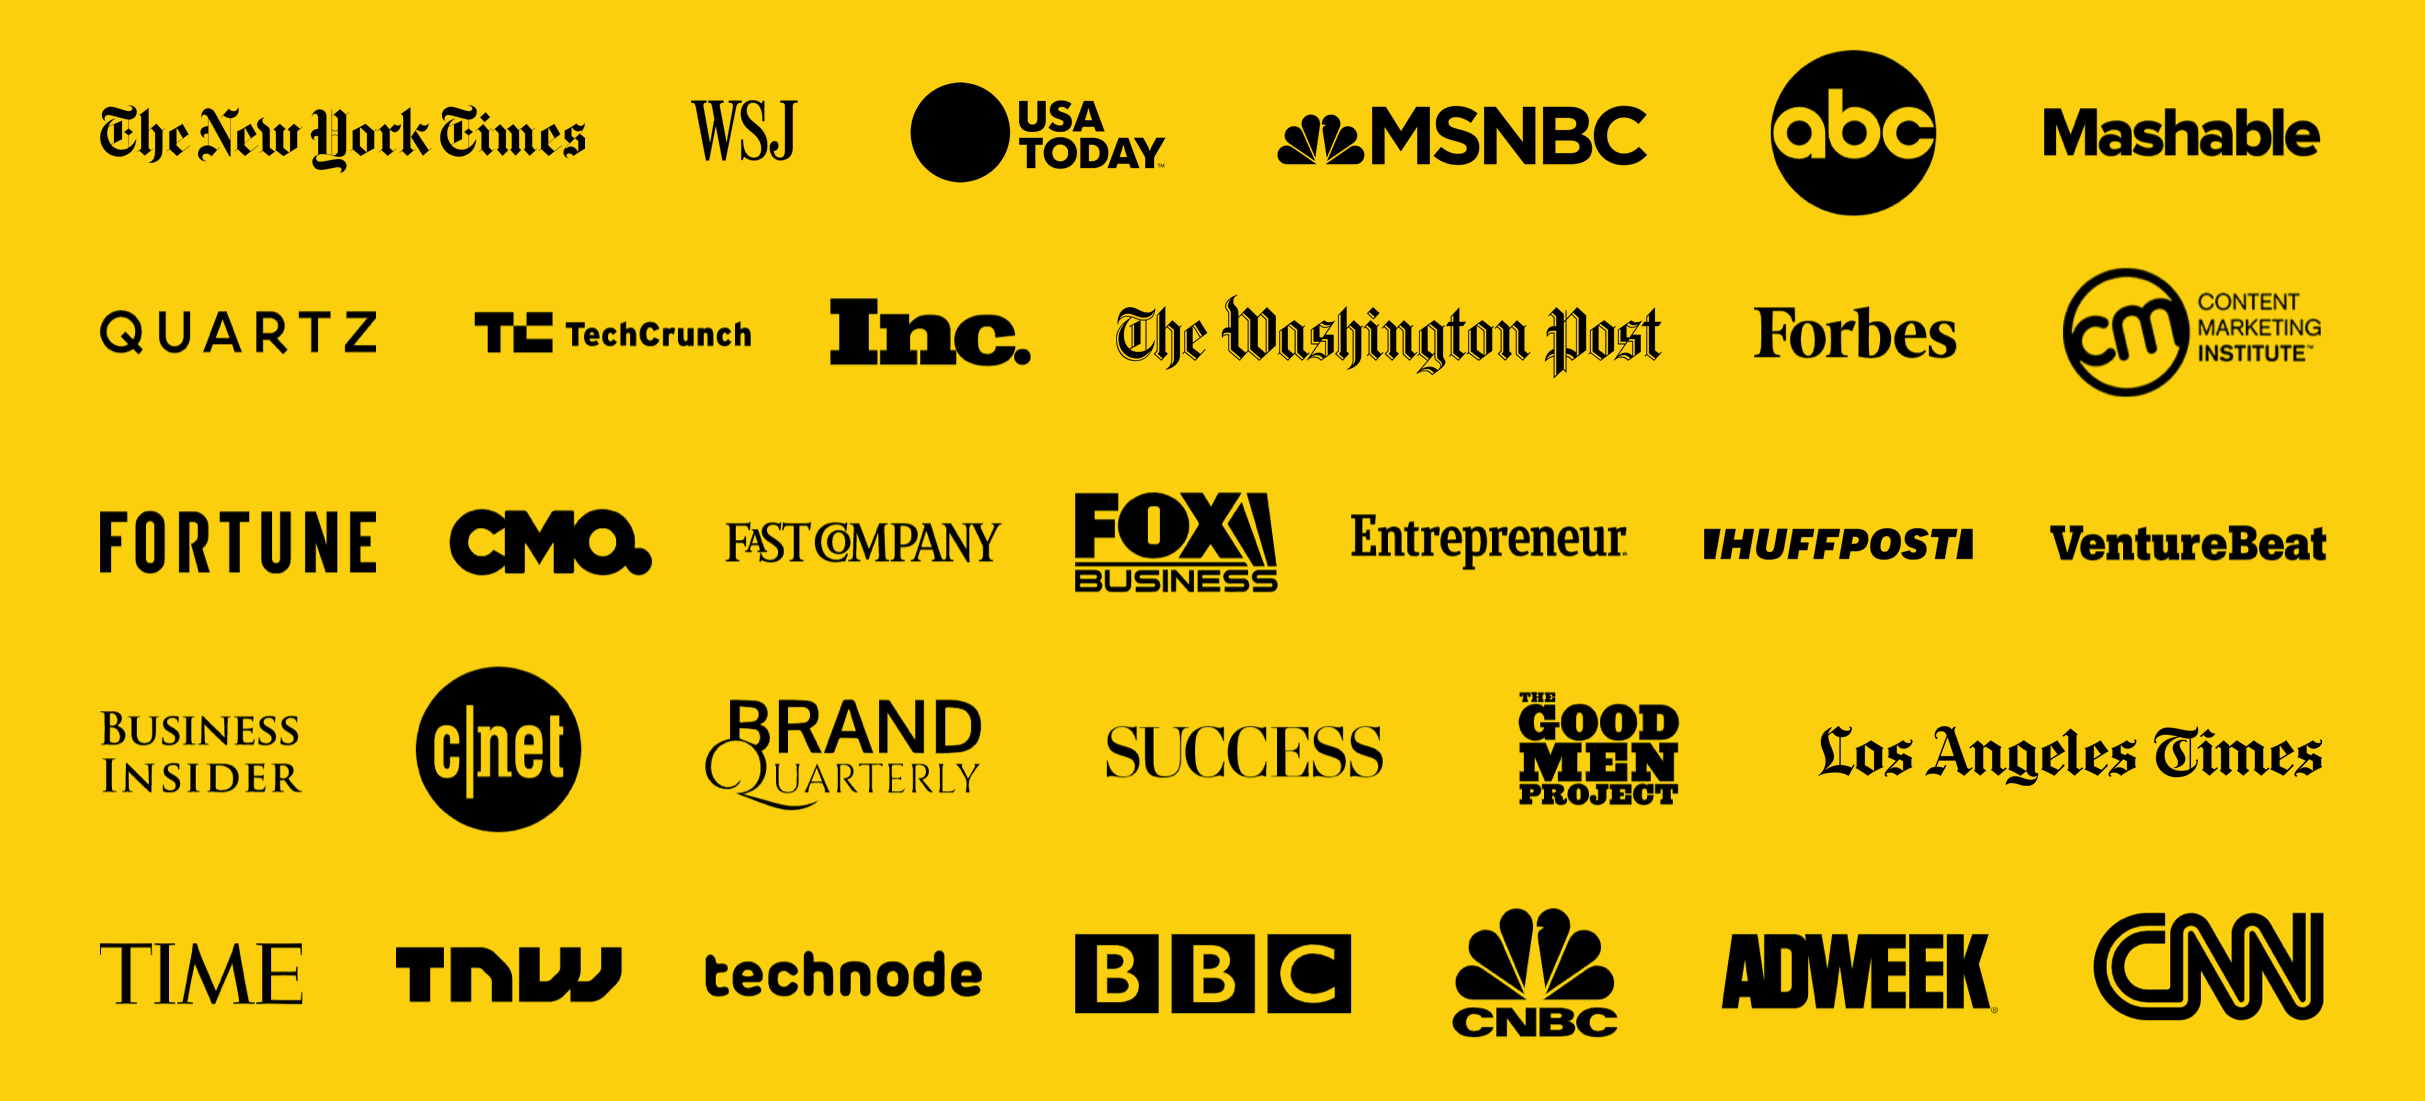 New York Times, WSJ, and other media logos